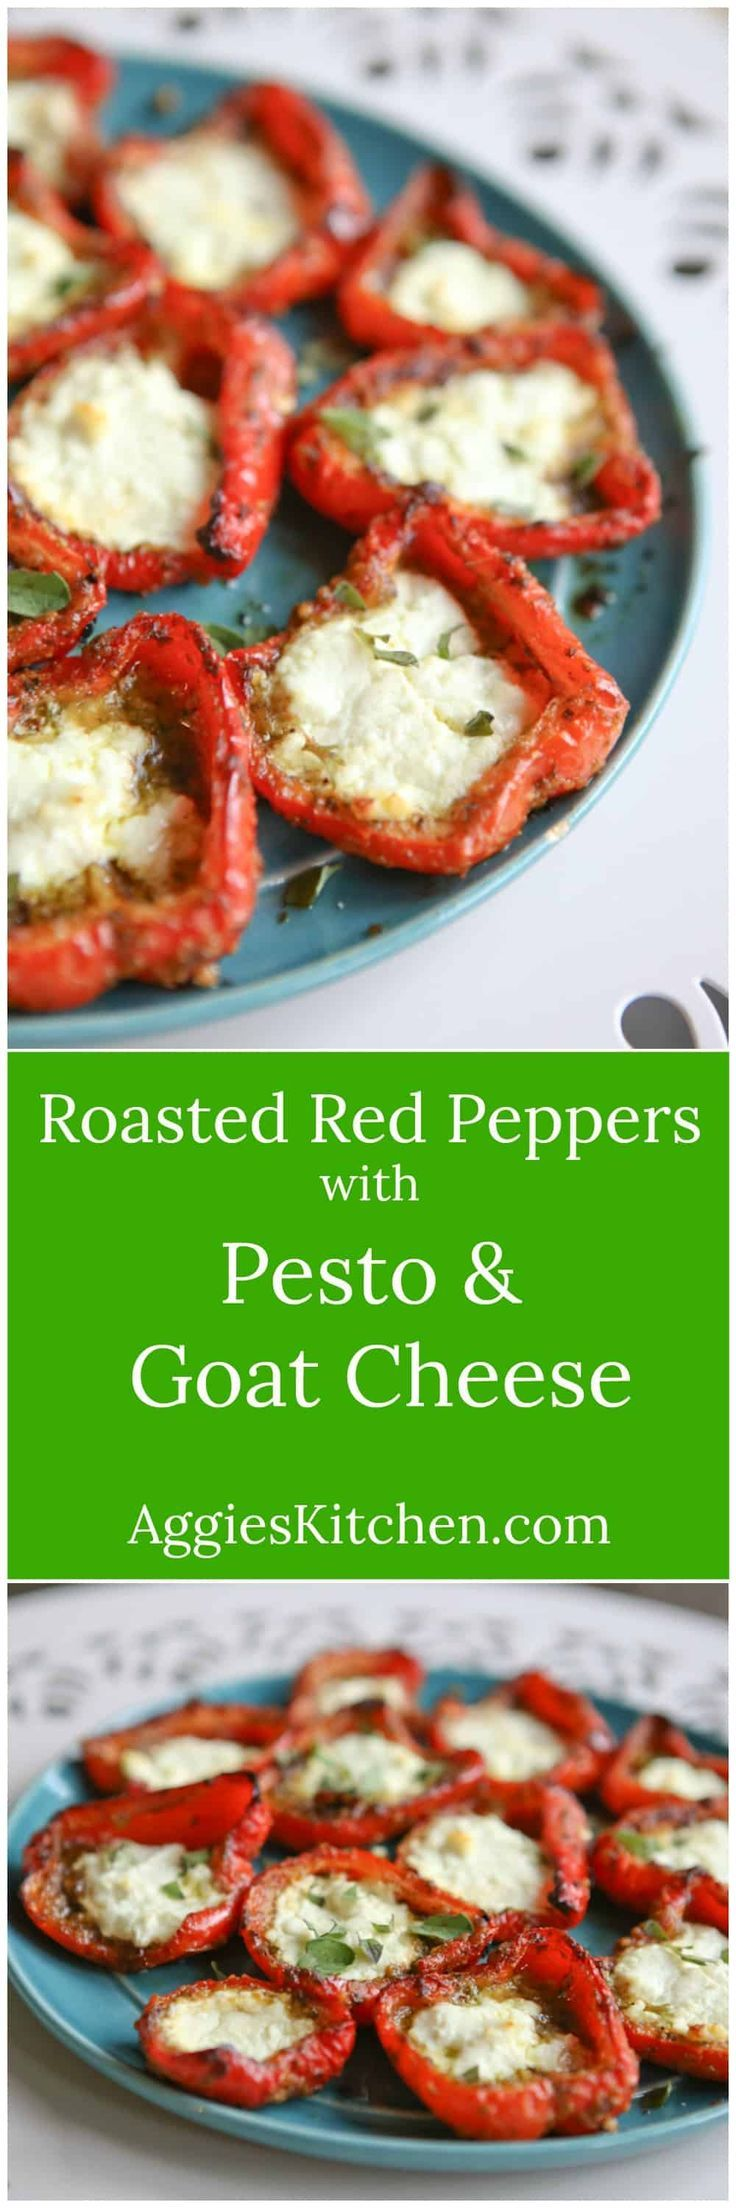 Roasted Red Peppers with Pesto and Goat Cheese – Cindy Blorstad Roasted Red Peppers with Pesto and Goat Cheese - Cindy Blorstad -